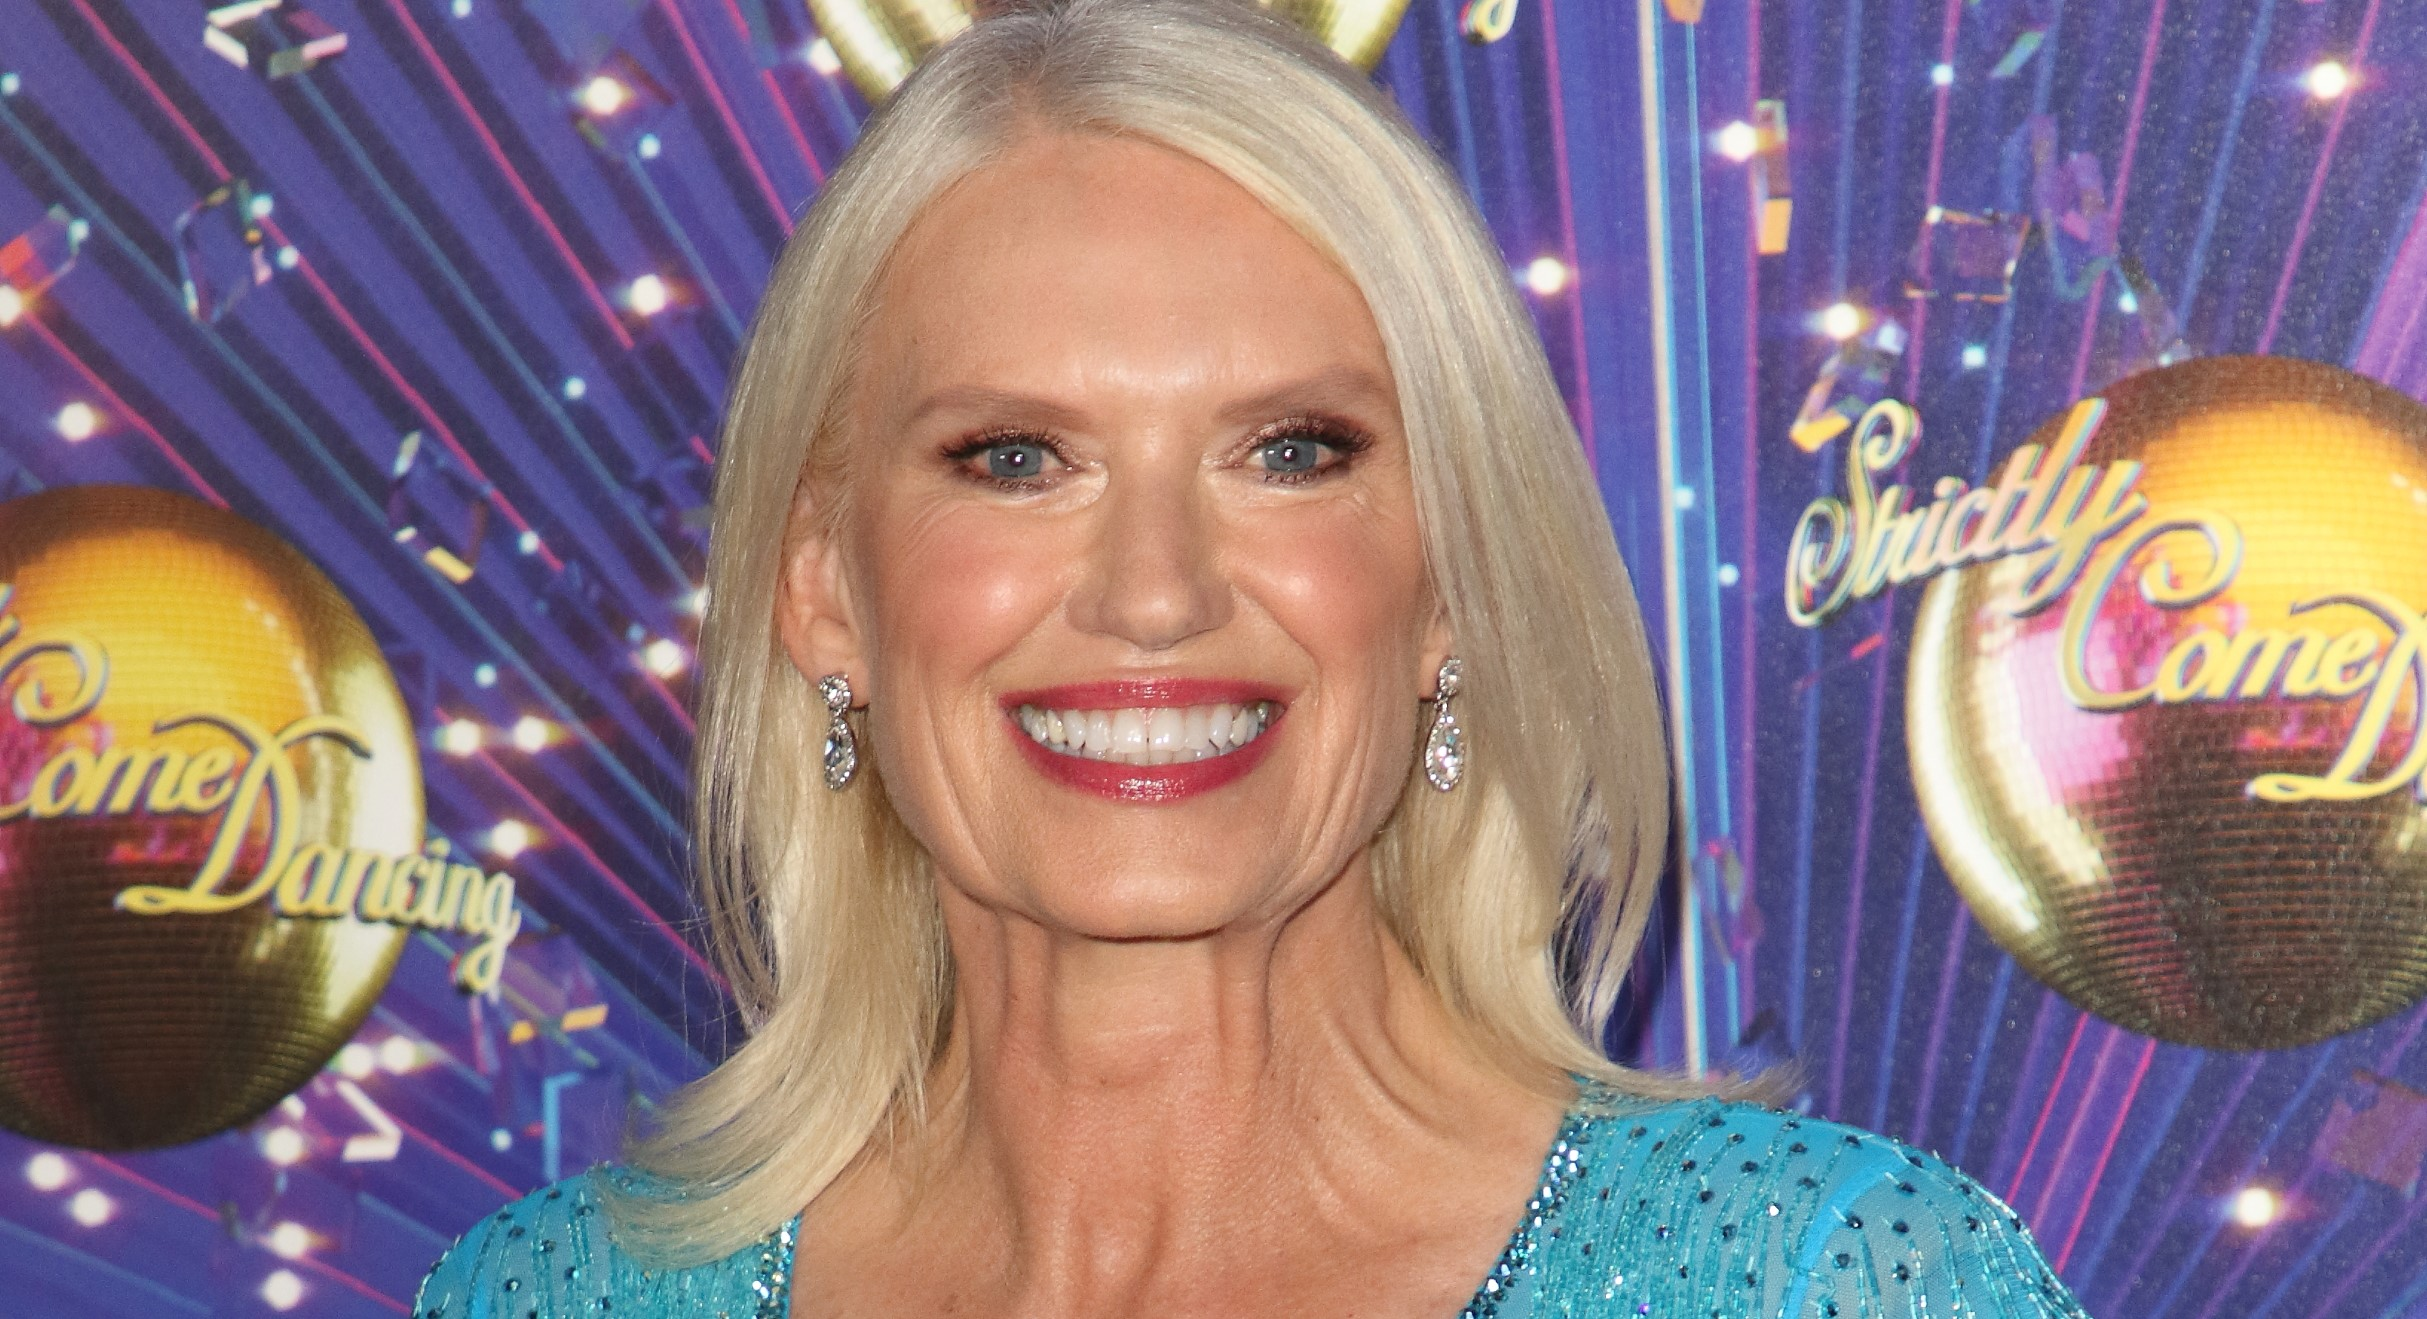 Strictly Come Dancing: Anneka Rice suffers injury ahead of series return